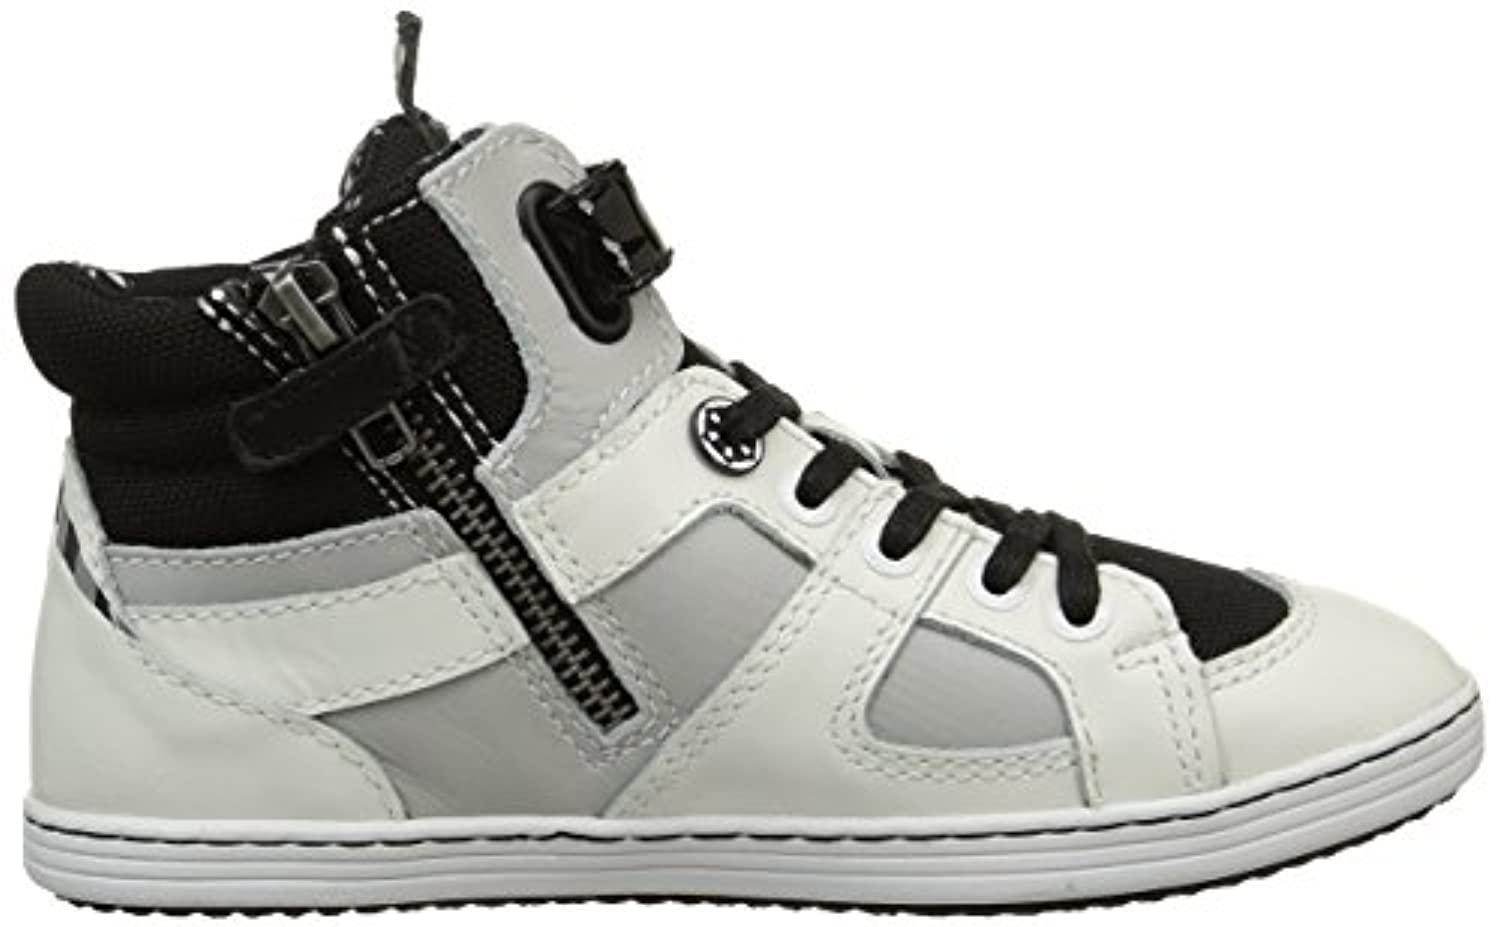 Kickers Boys Galactic High Sneakers White Size: 1